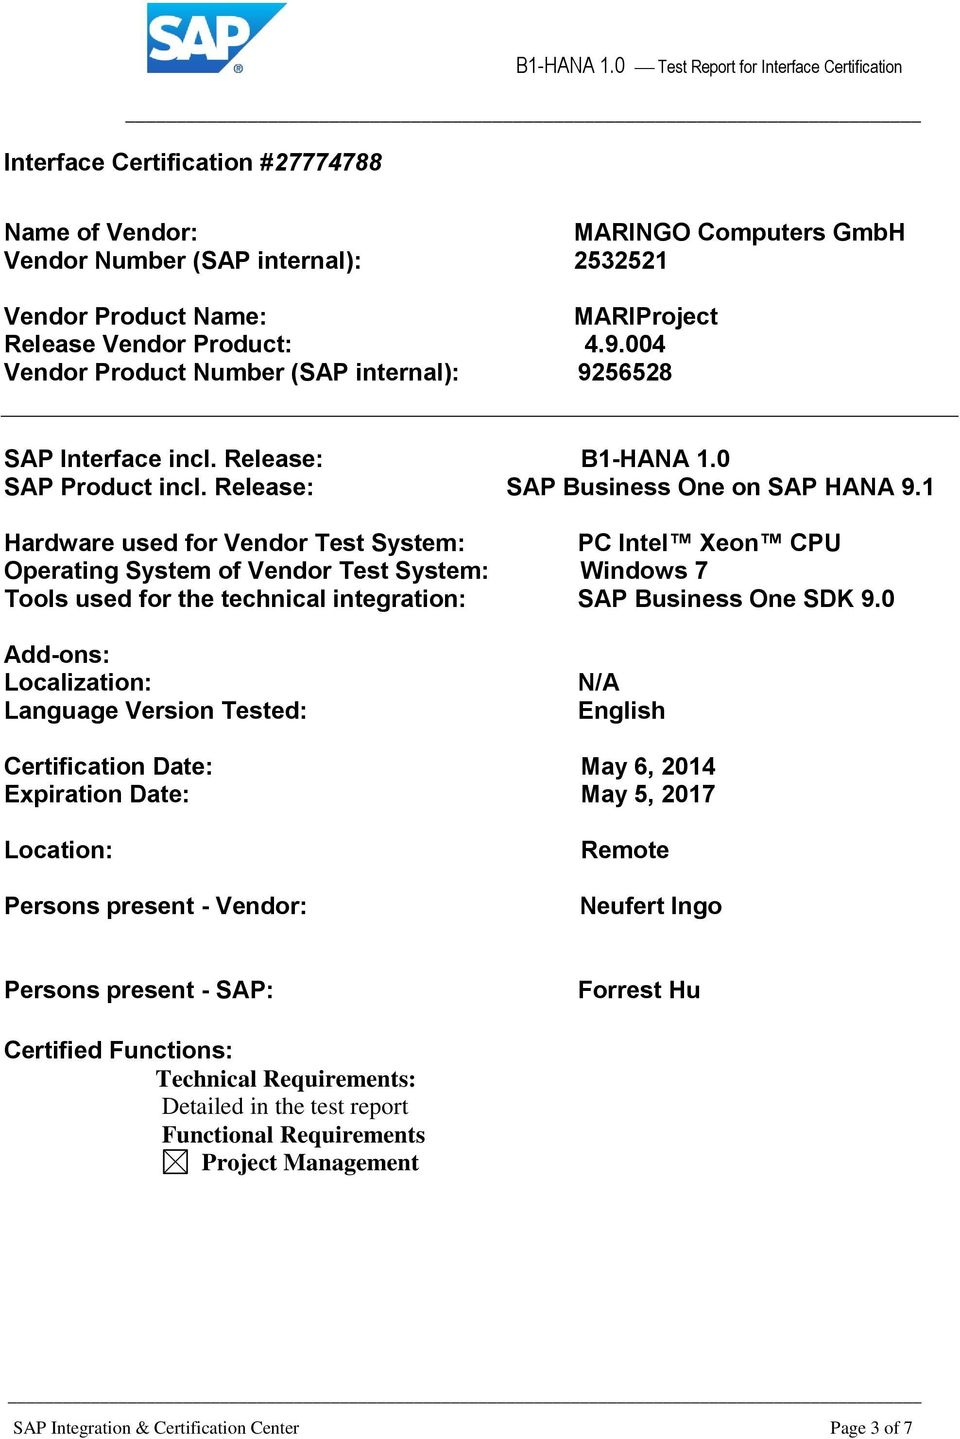 1 Hardware used for Vendor Test System: PC Intel Xeon CPU Operating System of Vendor Test System: Windows 7 Tools used for the technical integration: SAP Business One SDK 9.